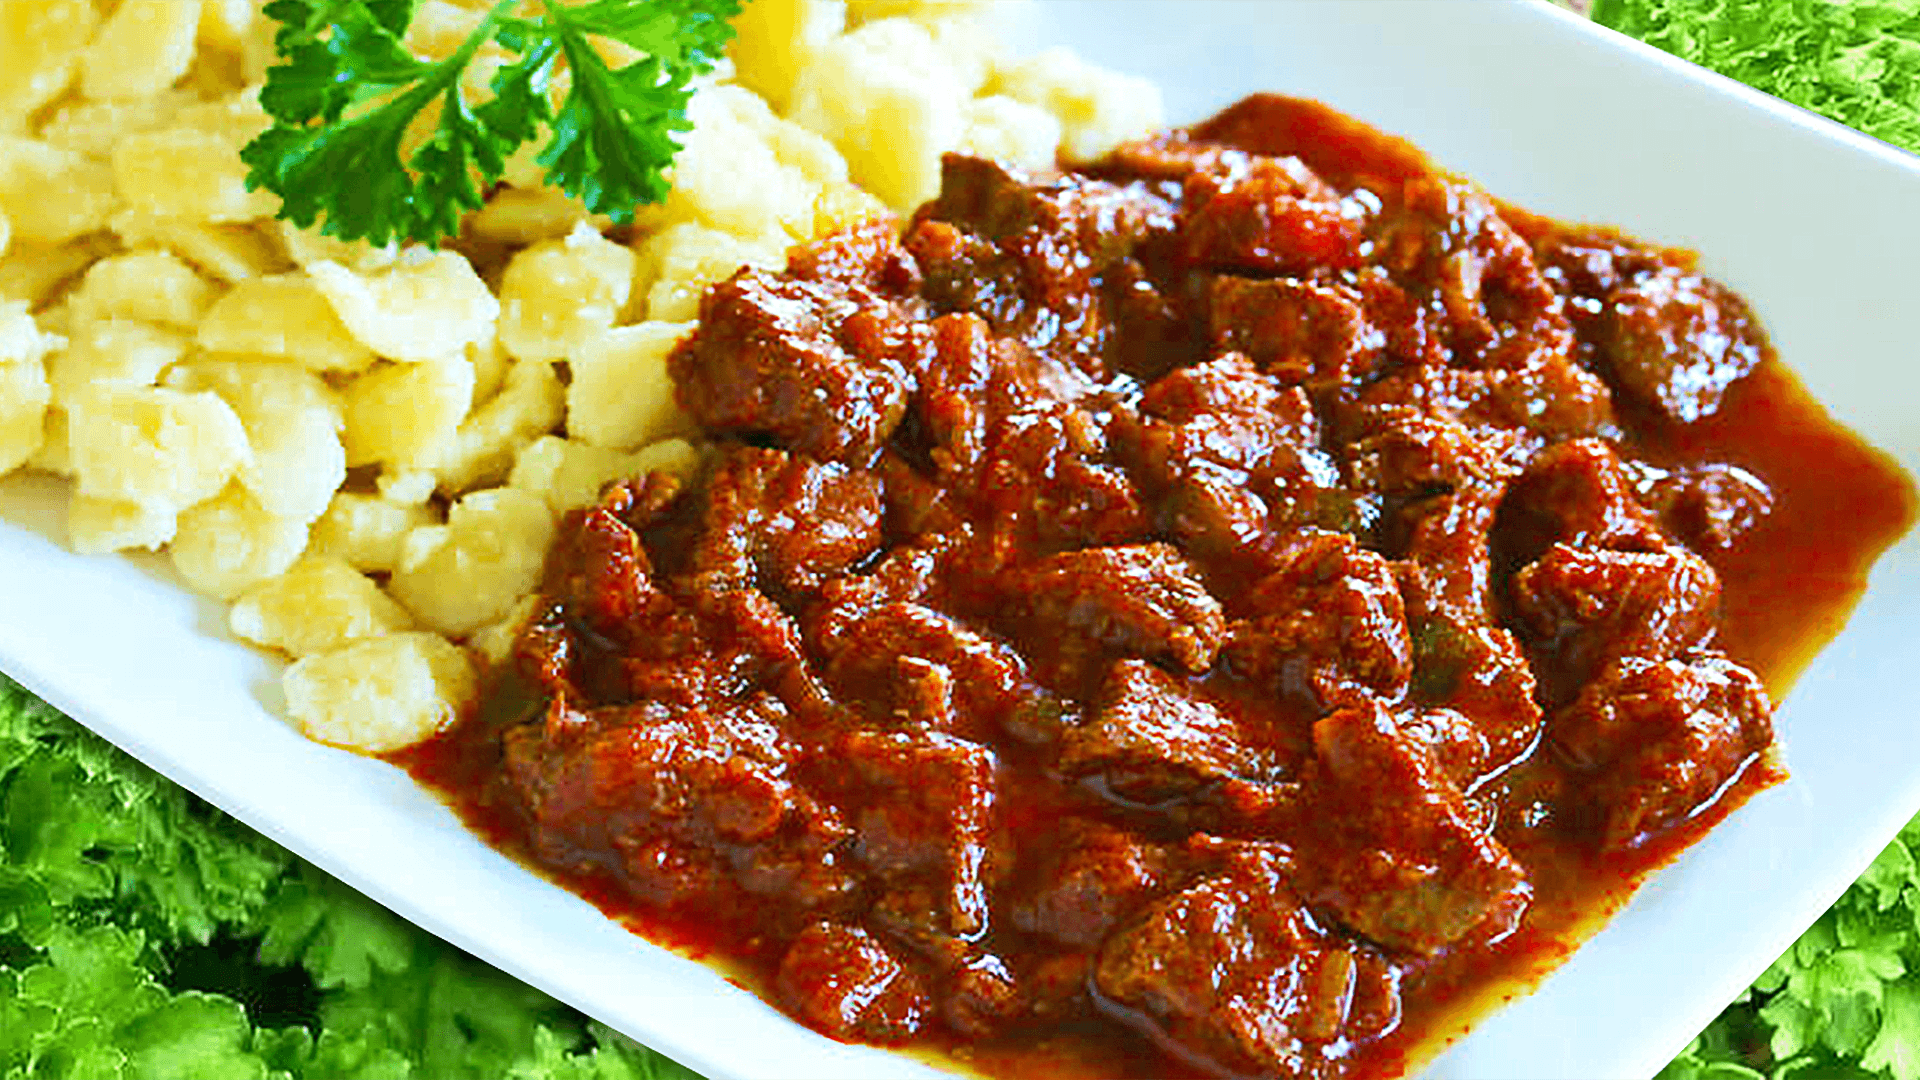 Authentic Beef Goulash Hungarian Goulash Recipe With Dumplings In 19 Steps